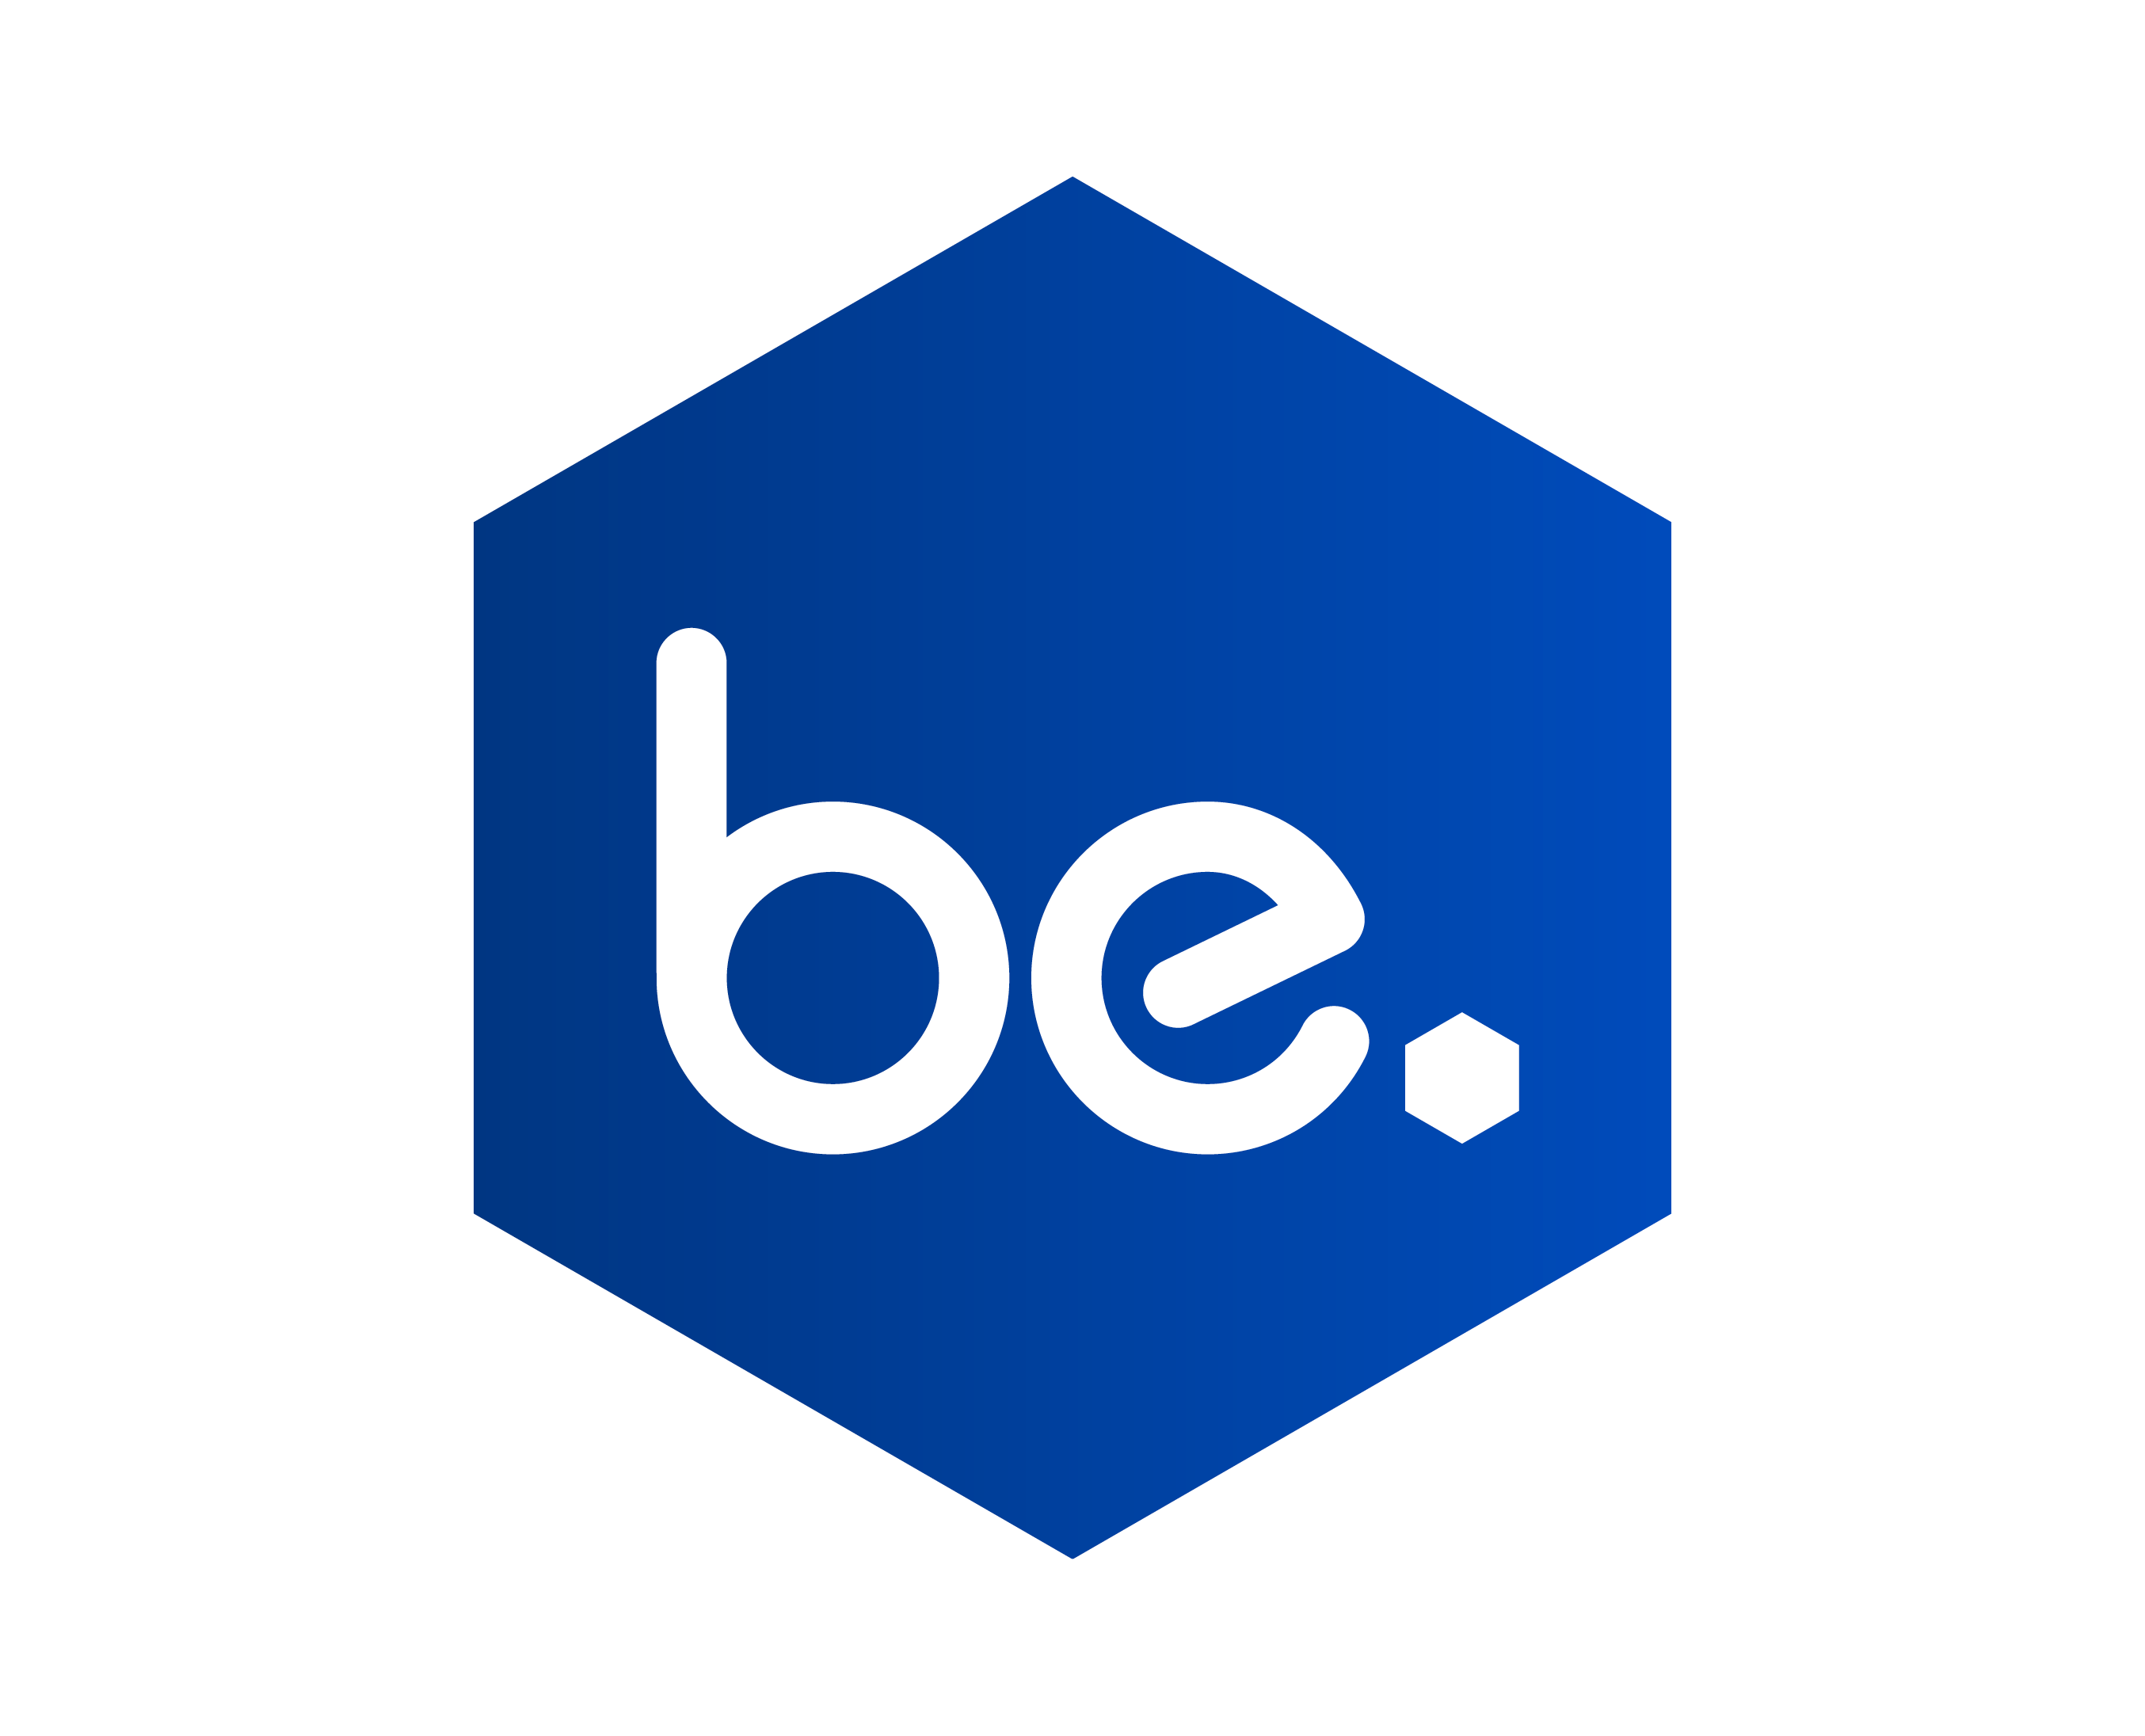 BE ALL EARS LOGO BY NUMBER VIOLET